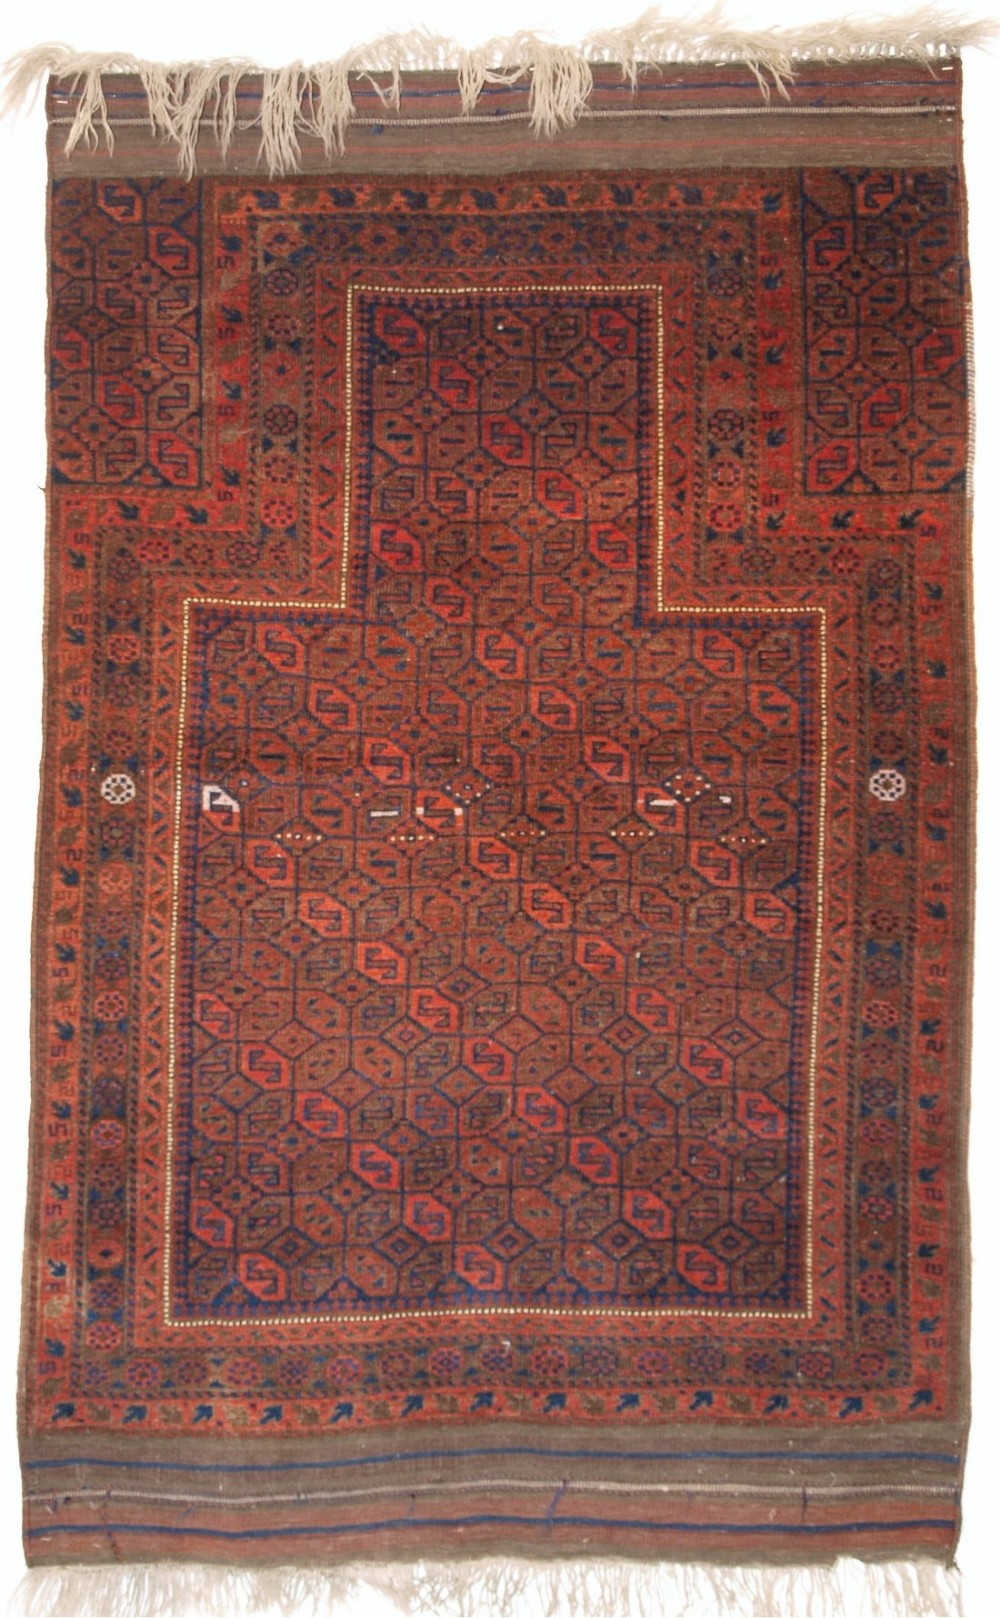 antique baluch prayer rug with 'tile' design long kilim ends late 19th century